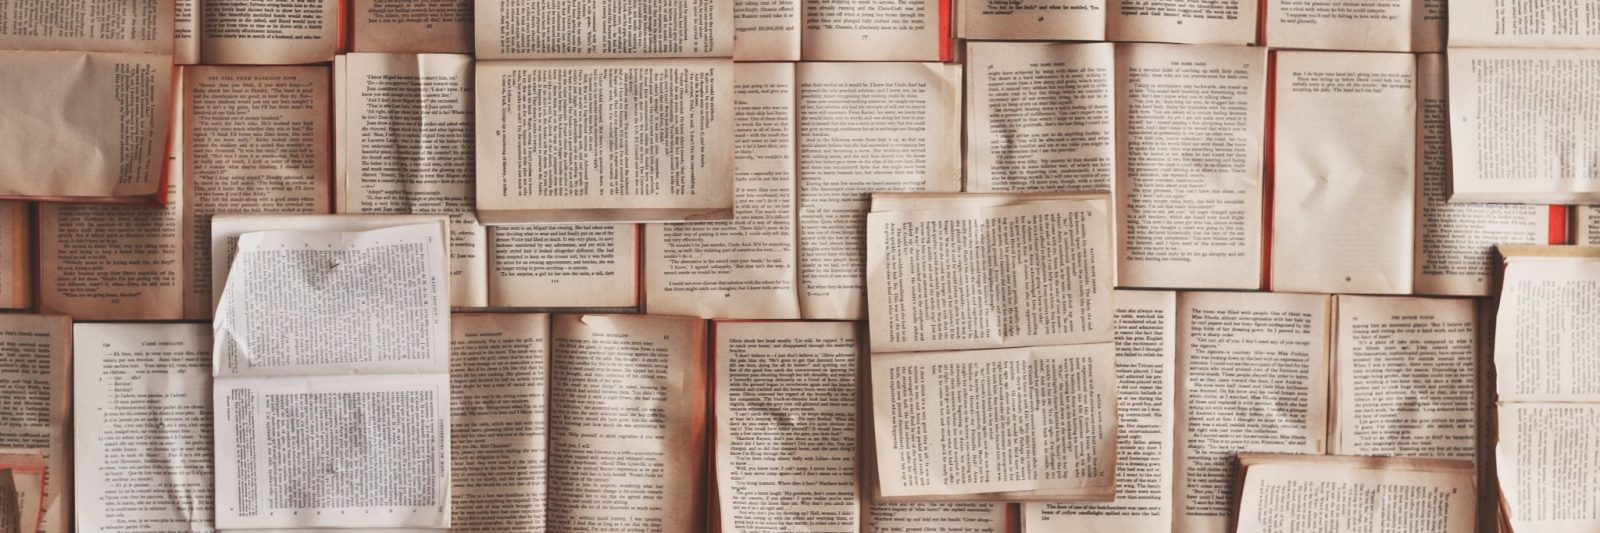 20 Legal Terms Everyone Should Know and Understand